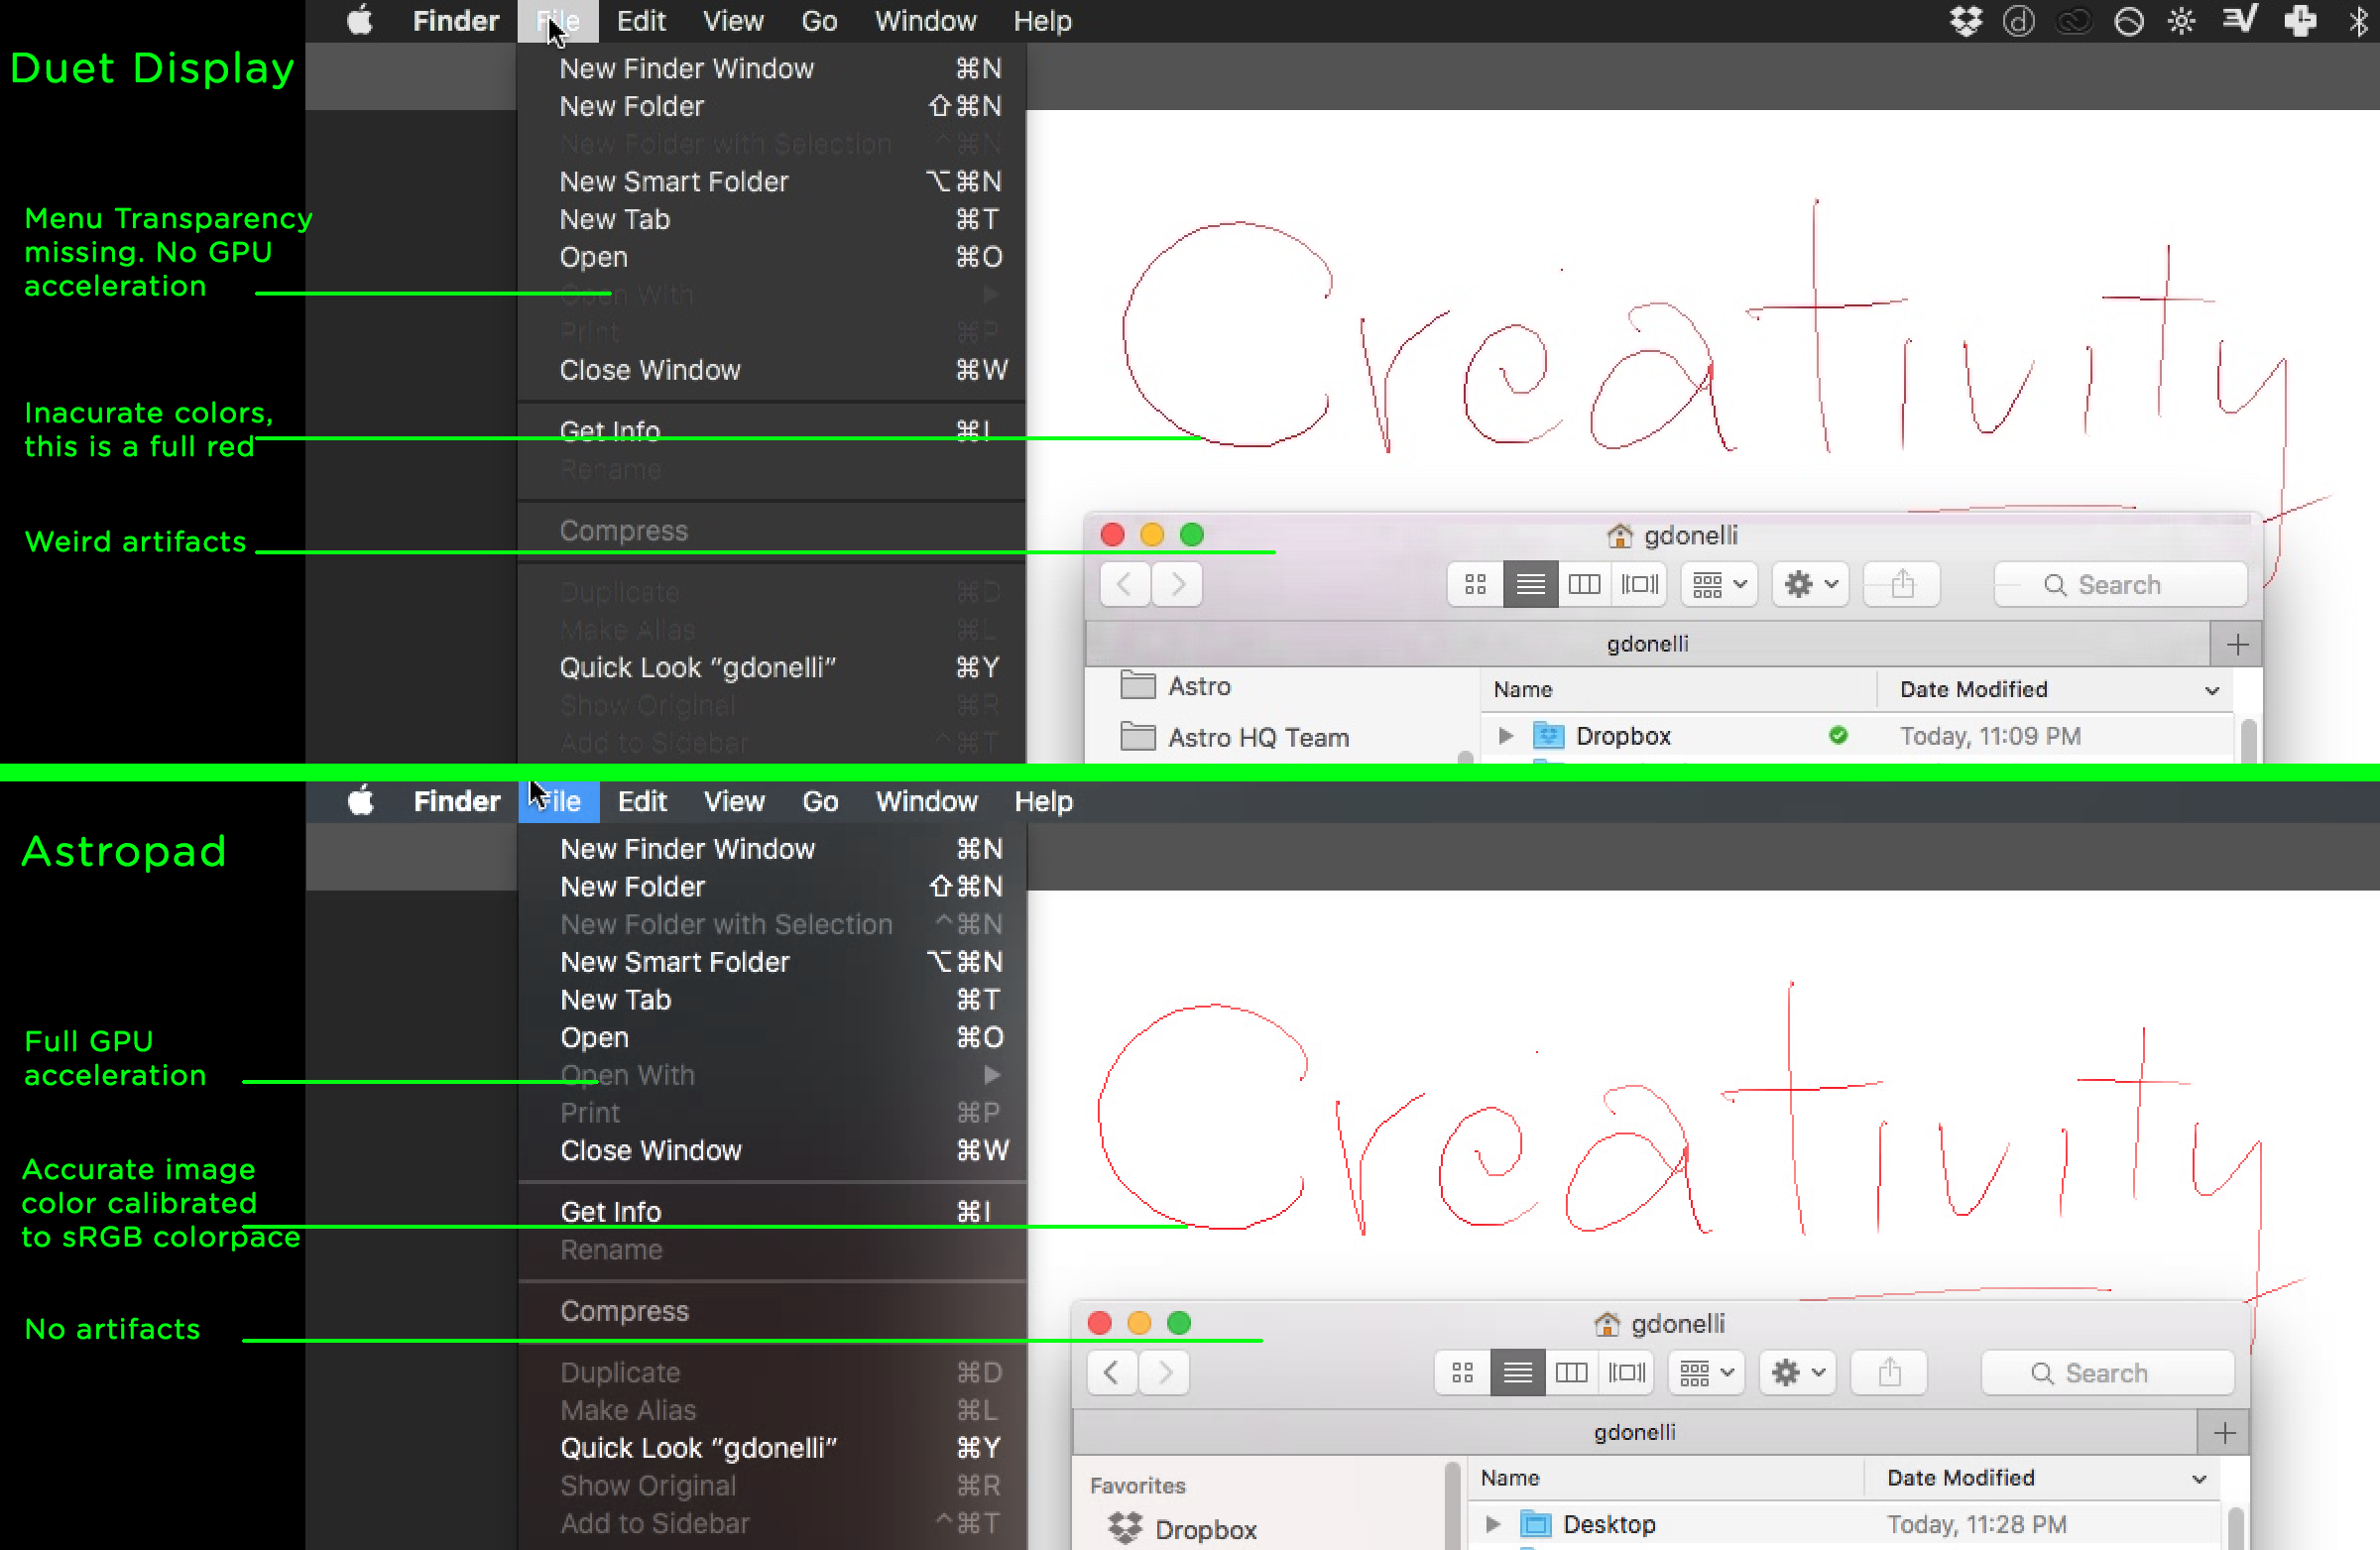 Duet-Display-diff-Astropad-same-screen-org